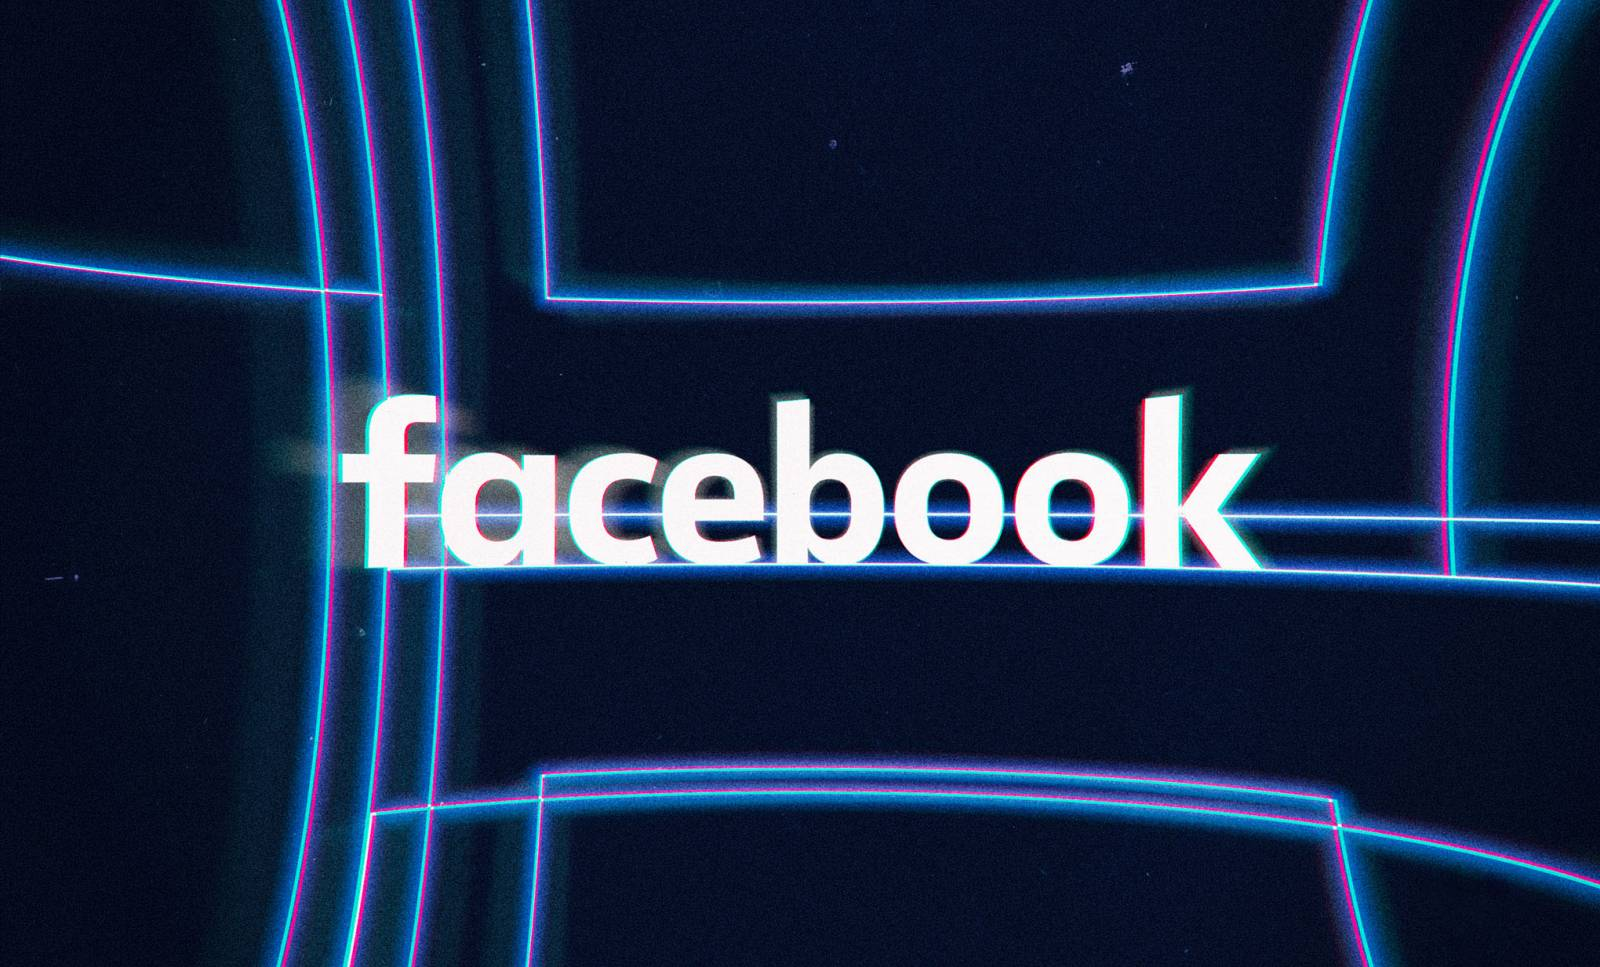 Facebook News Feed control